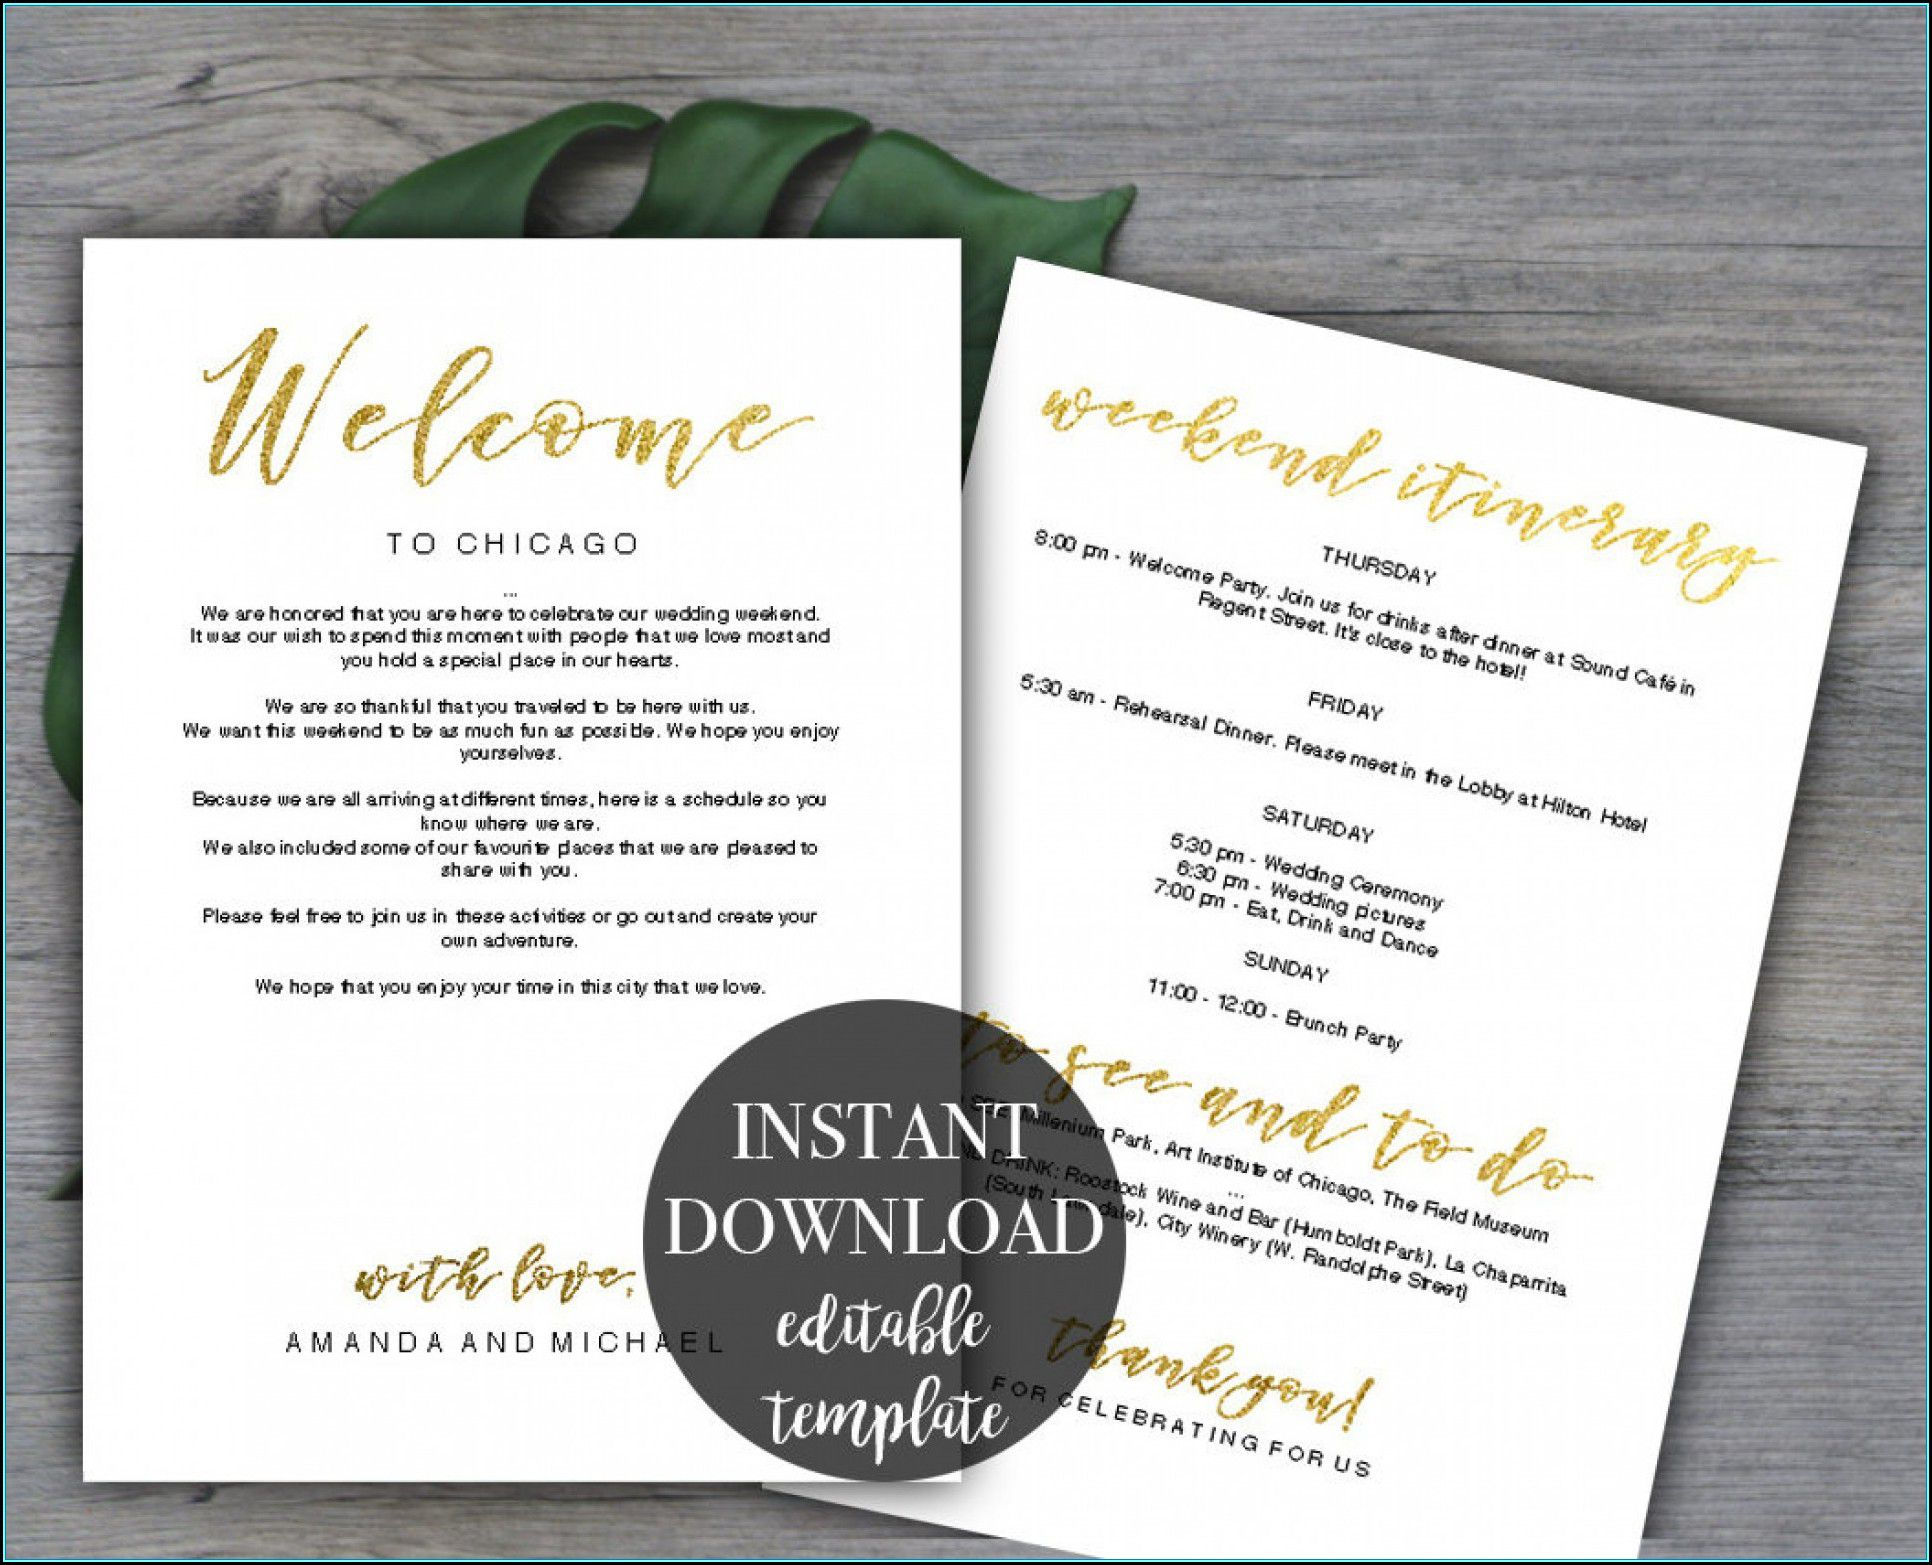 009 Archaicawful Bachelorette Party Itinerary Template Free Inspiration  DownloadFull